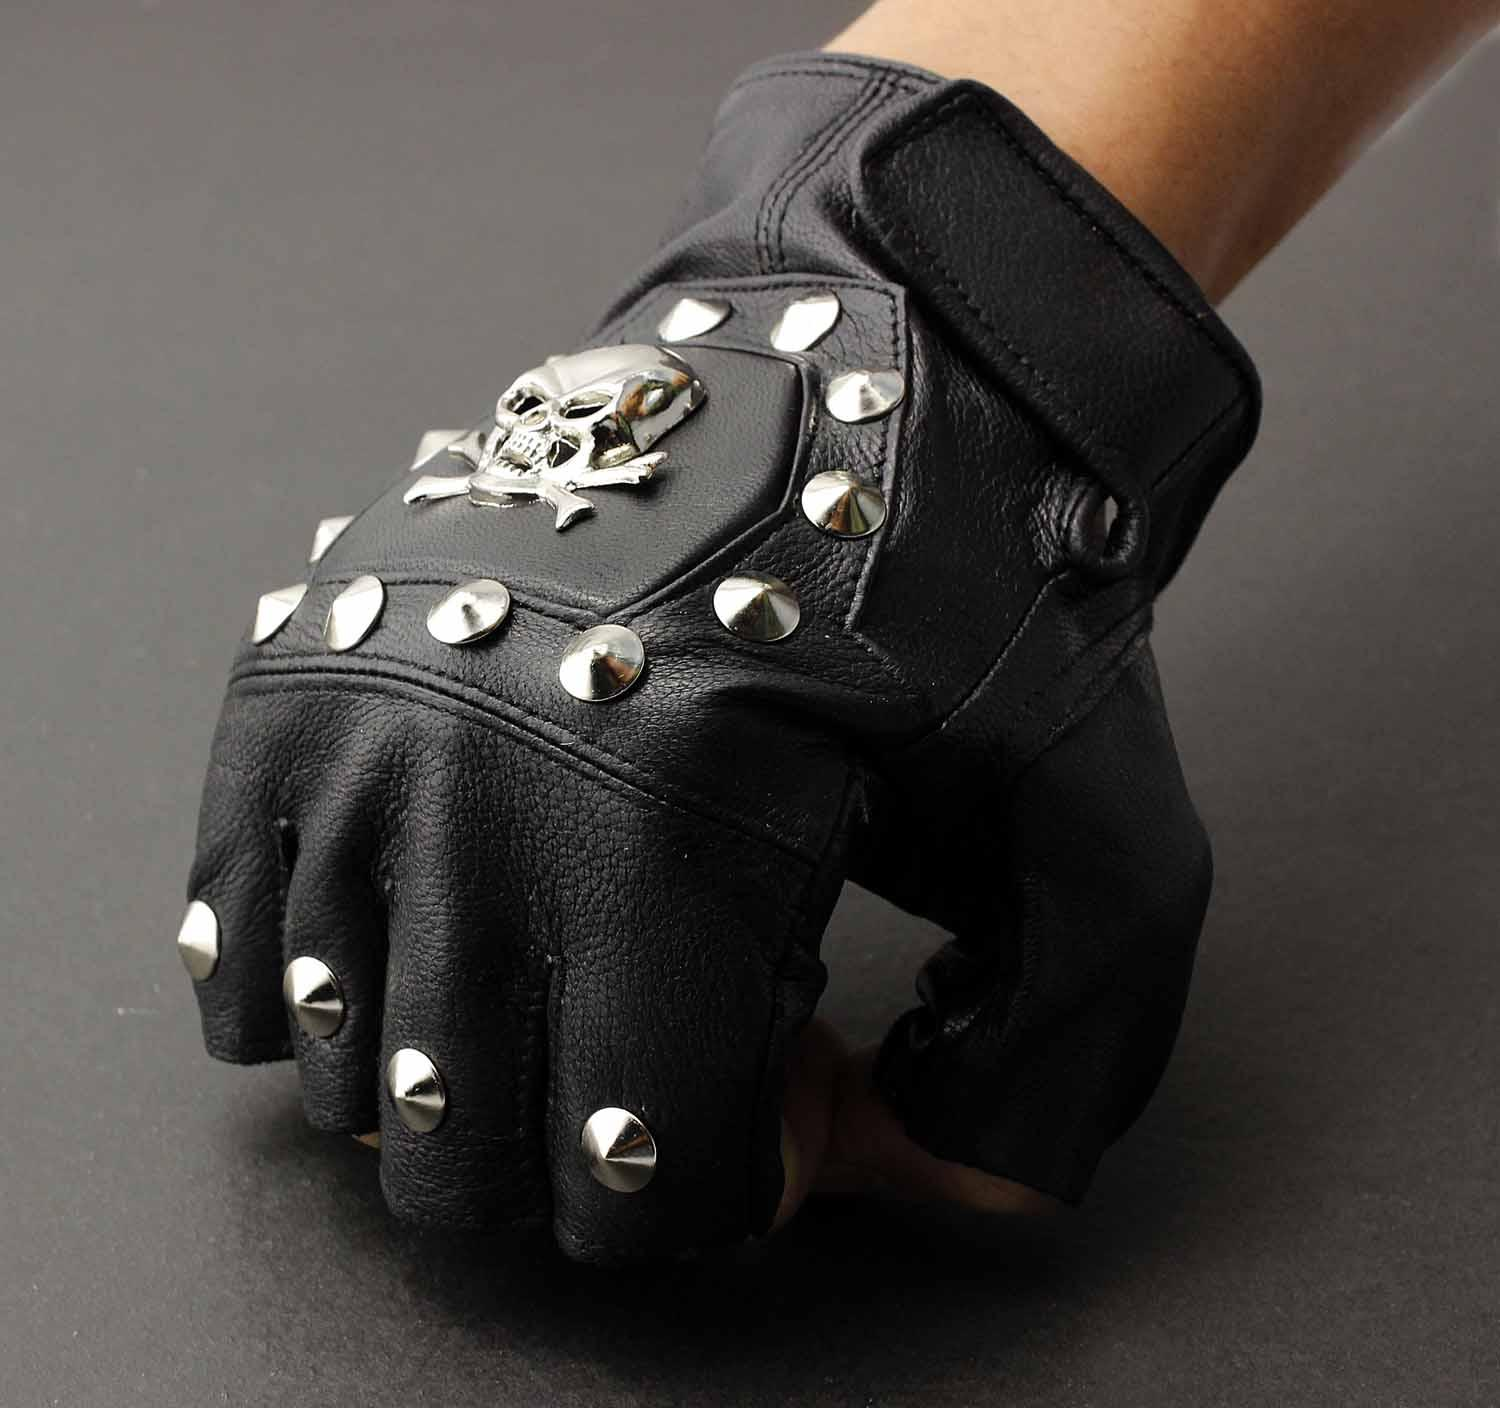 Fingerless leather gloves mens accessories - Men S Real Leather Skull Punk Rocker Driving Motorcycle Biker Fingerless Gloves